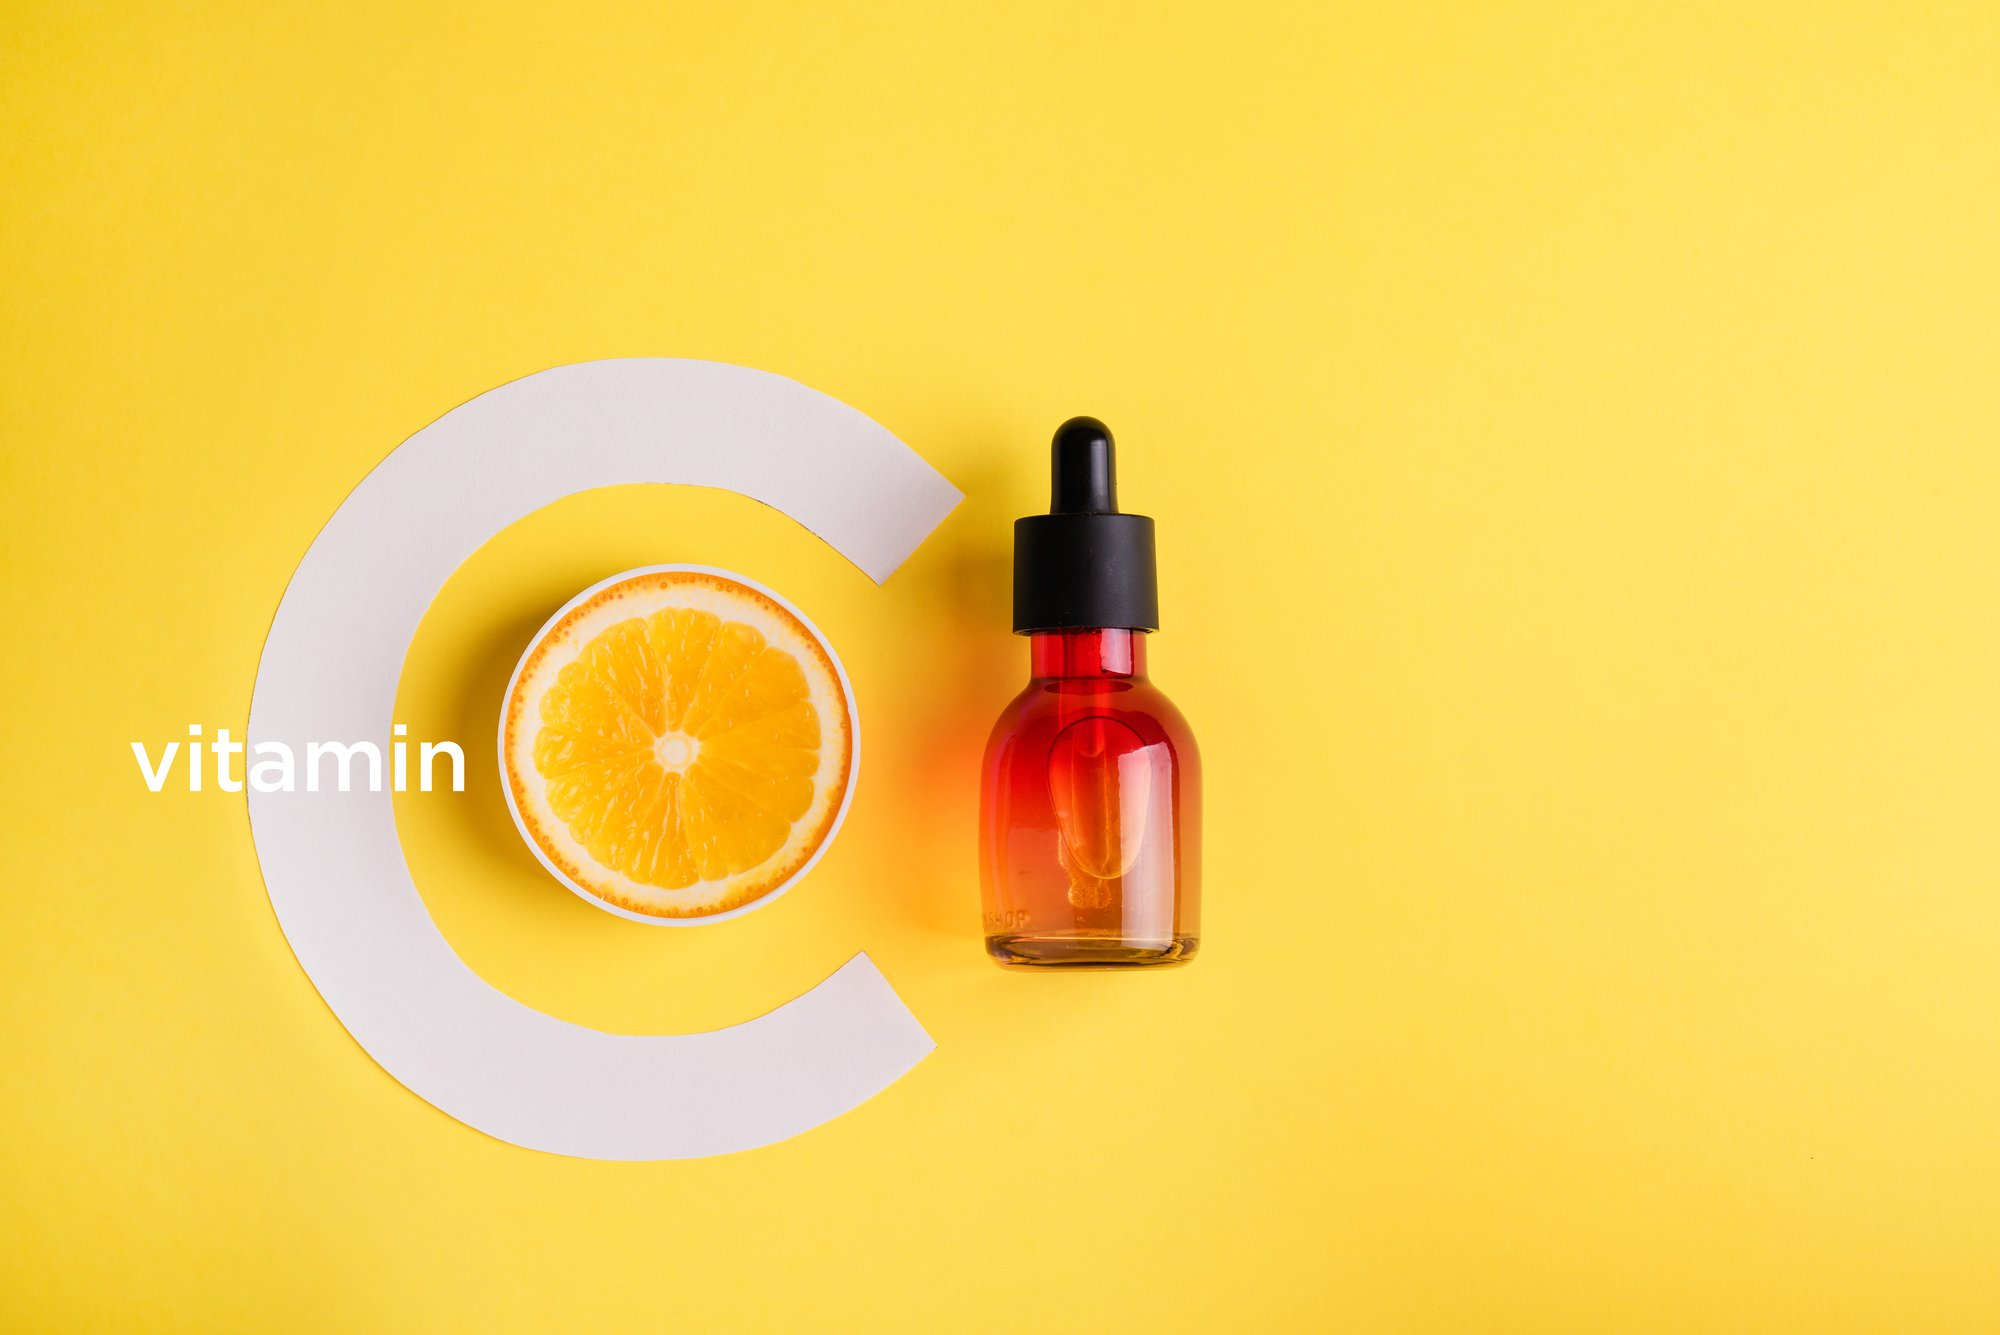 Brief summary of vitamin C benefits. What is the best face serum rich in vit. C?